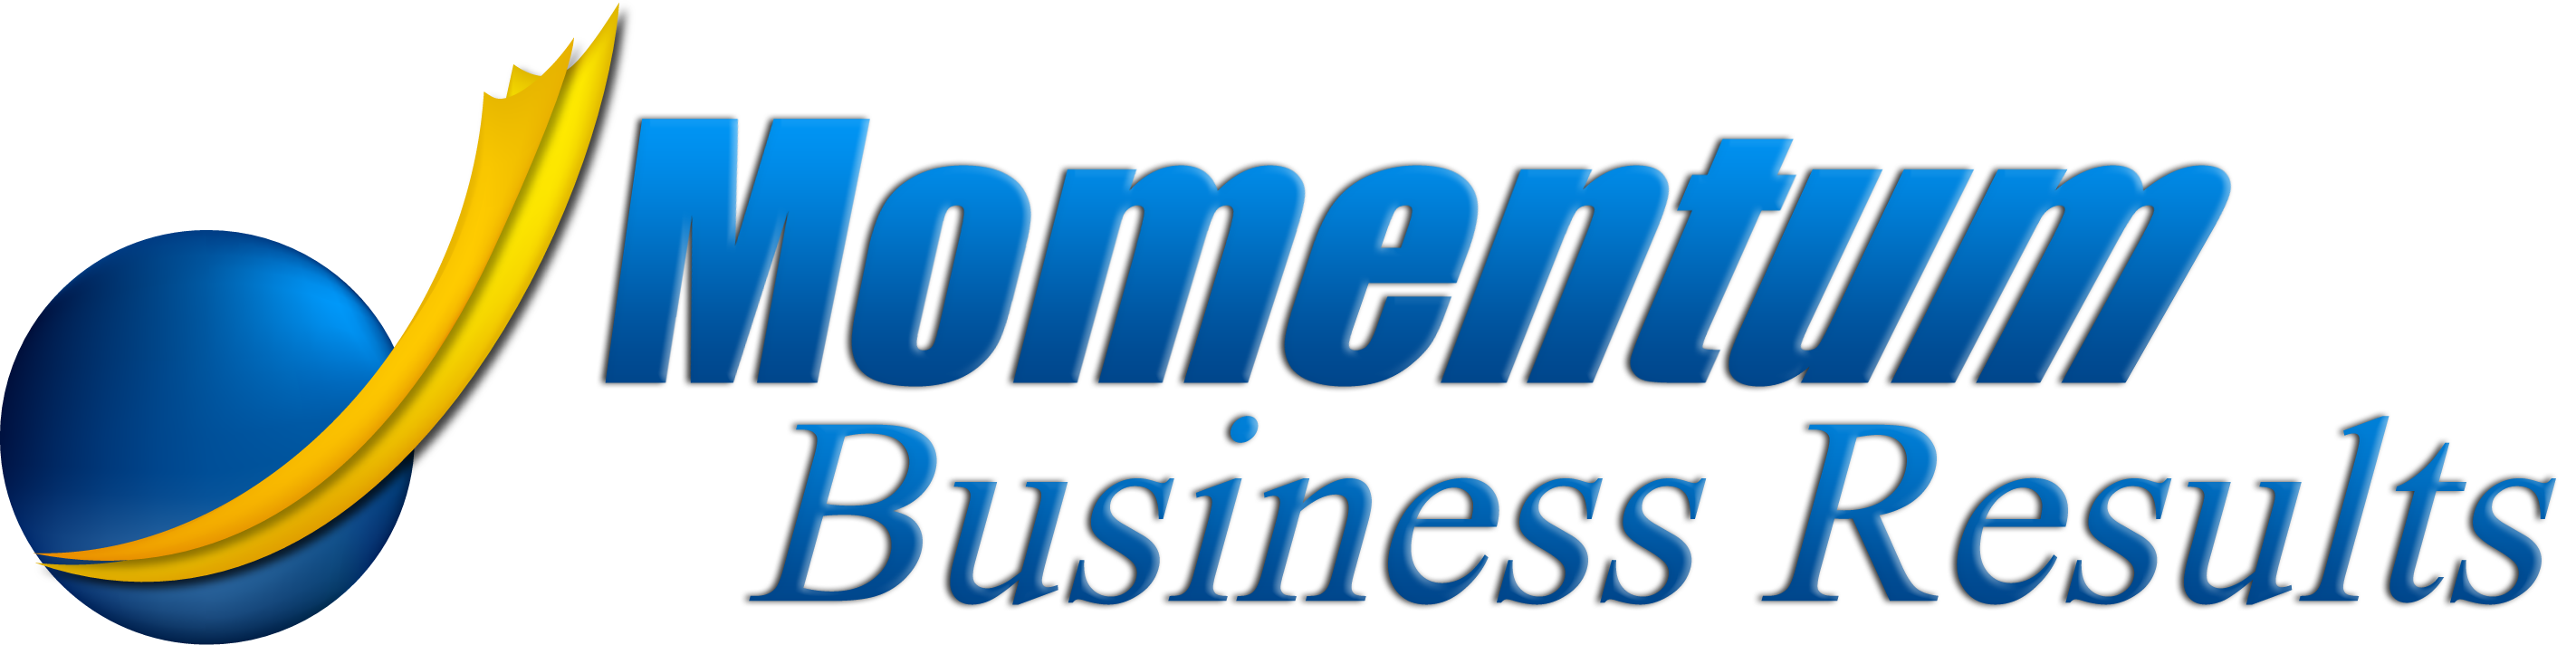 momentum business results logo jpeg